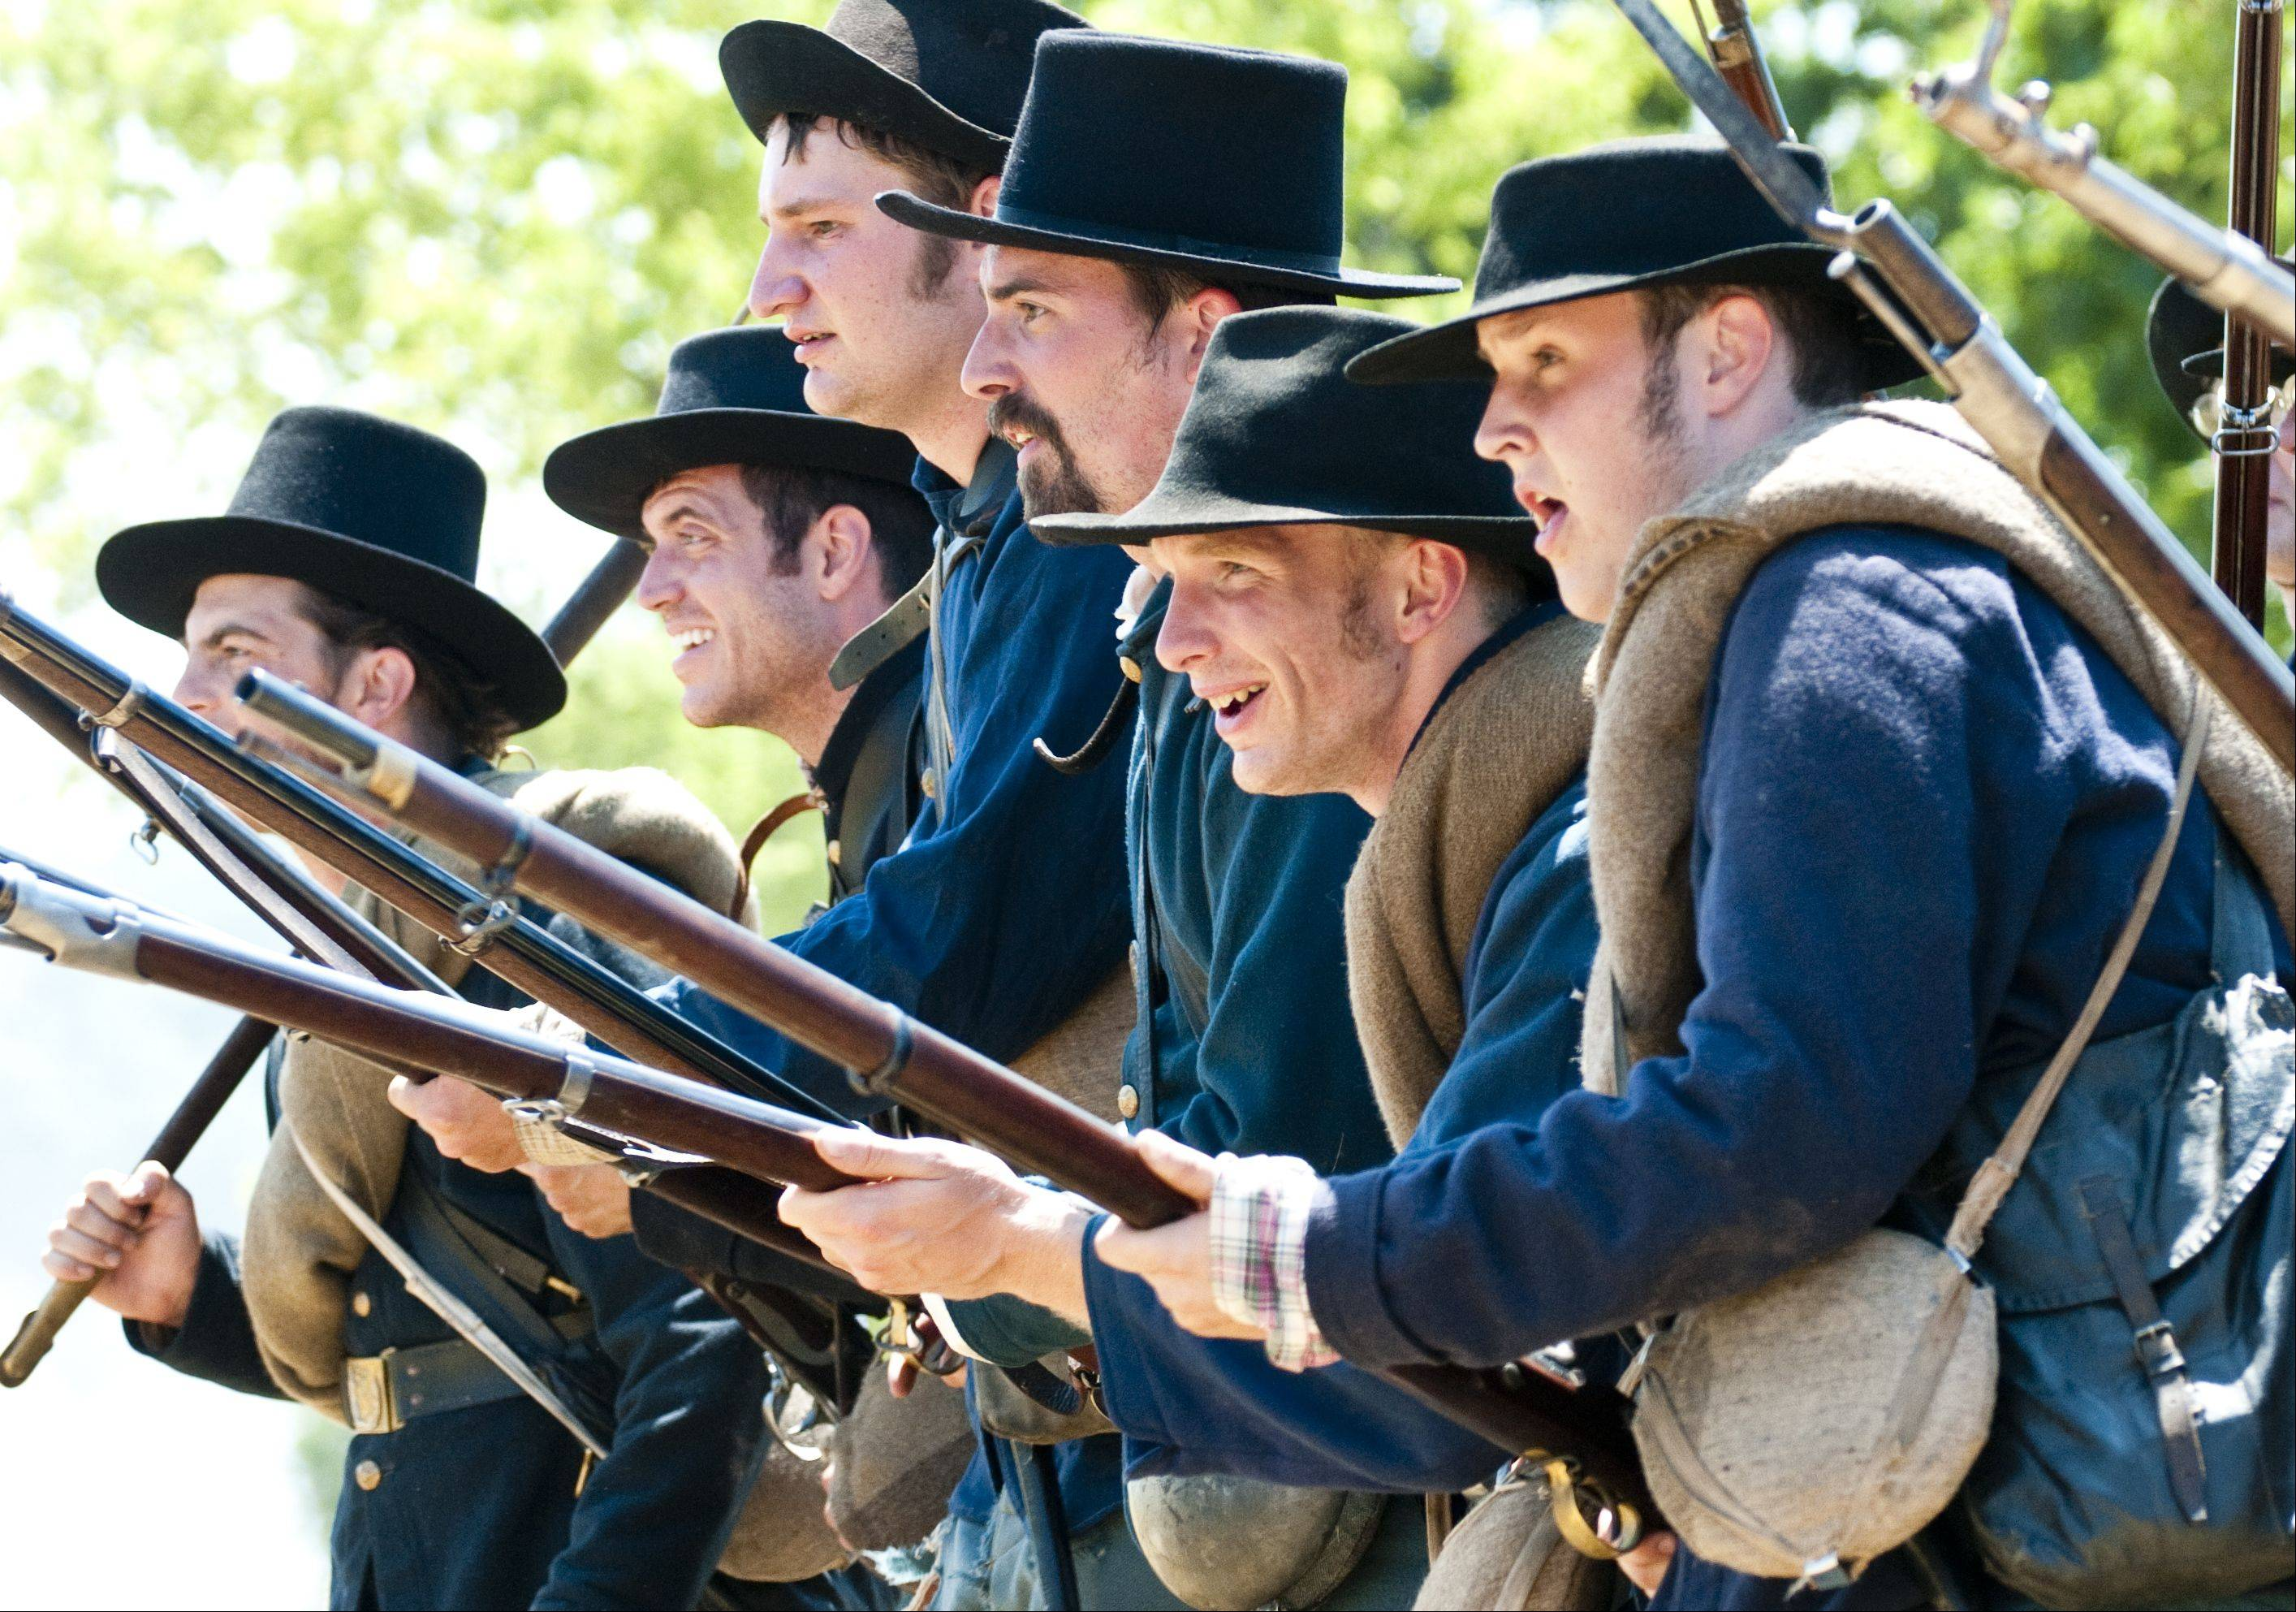 Union soldiers advance on a Confederate dispatch during Civil War Days Sunday in the Lakewood Forest Preserve near Wauconda. The hour-long battle featured booming canon fire and extensive military maneuvering across the fields of the preserve.